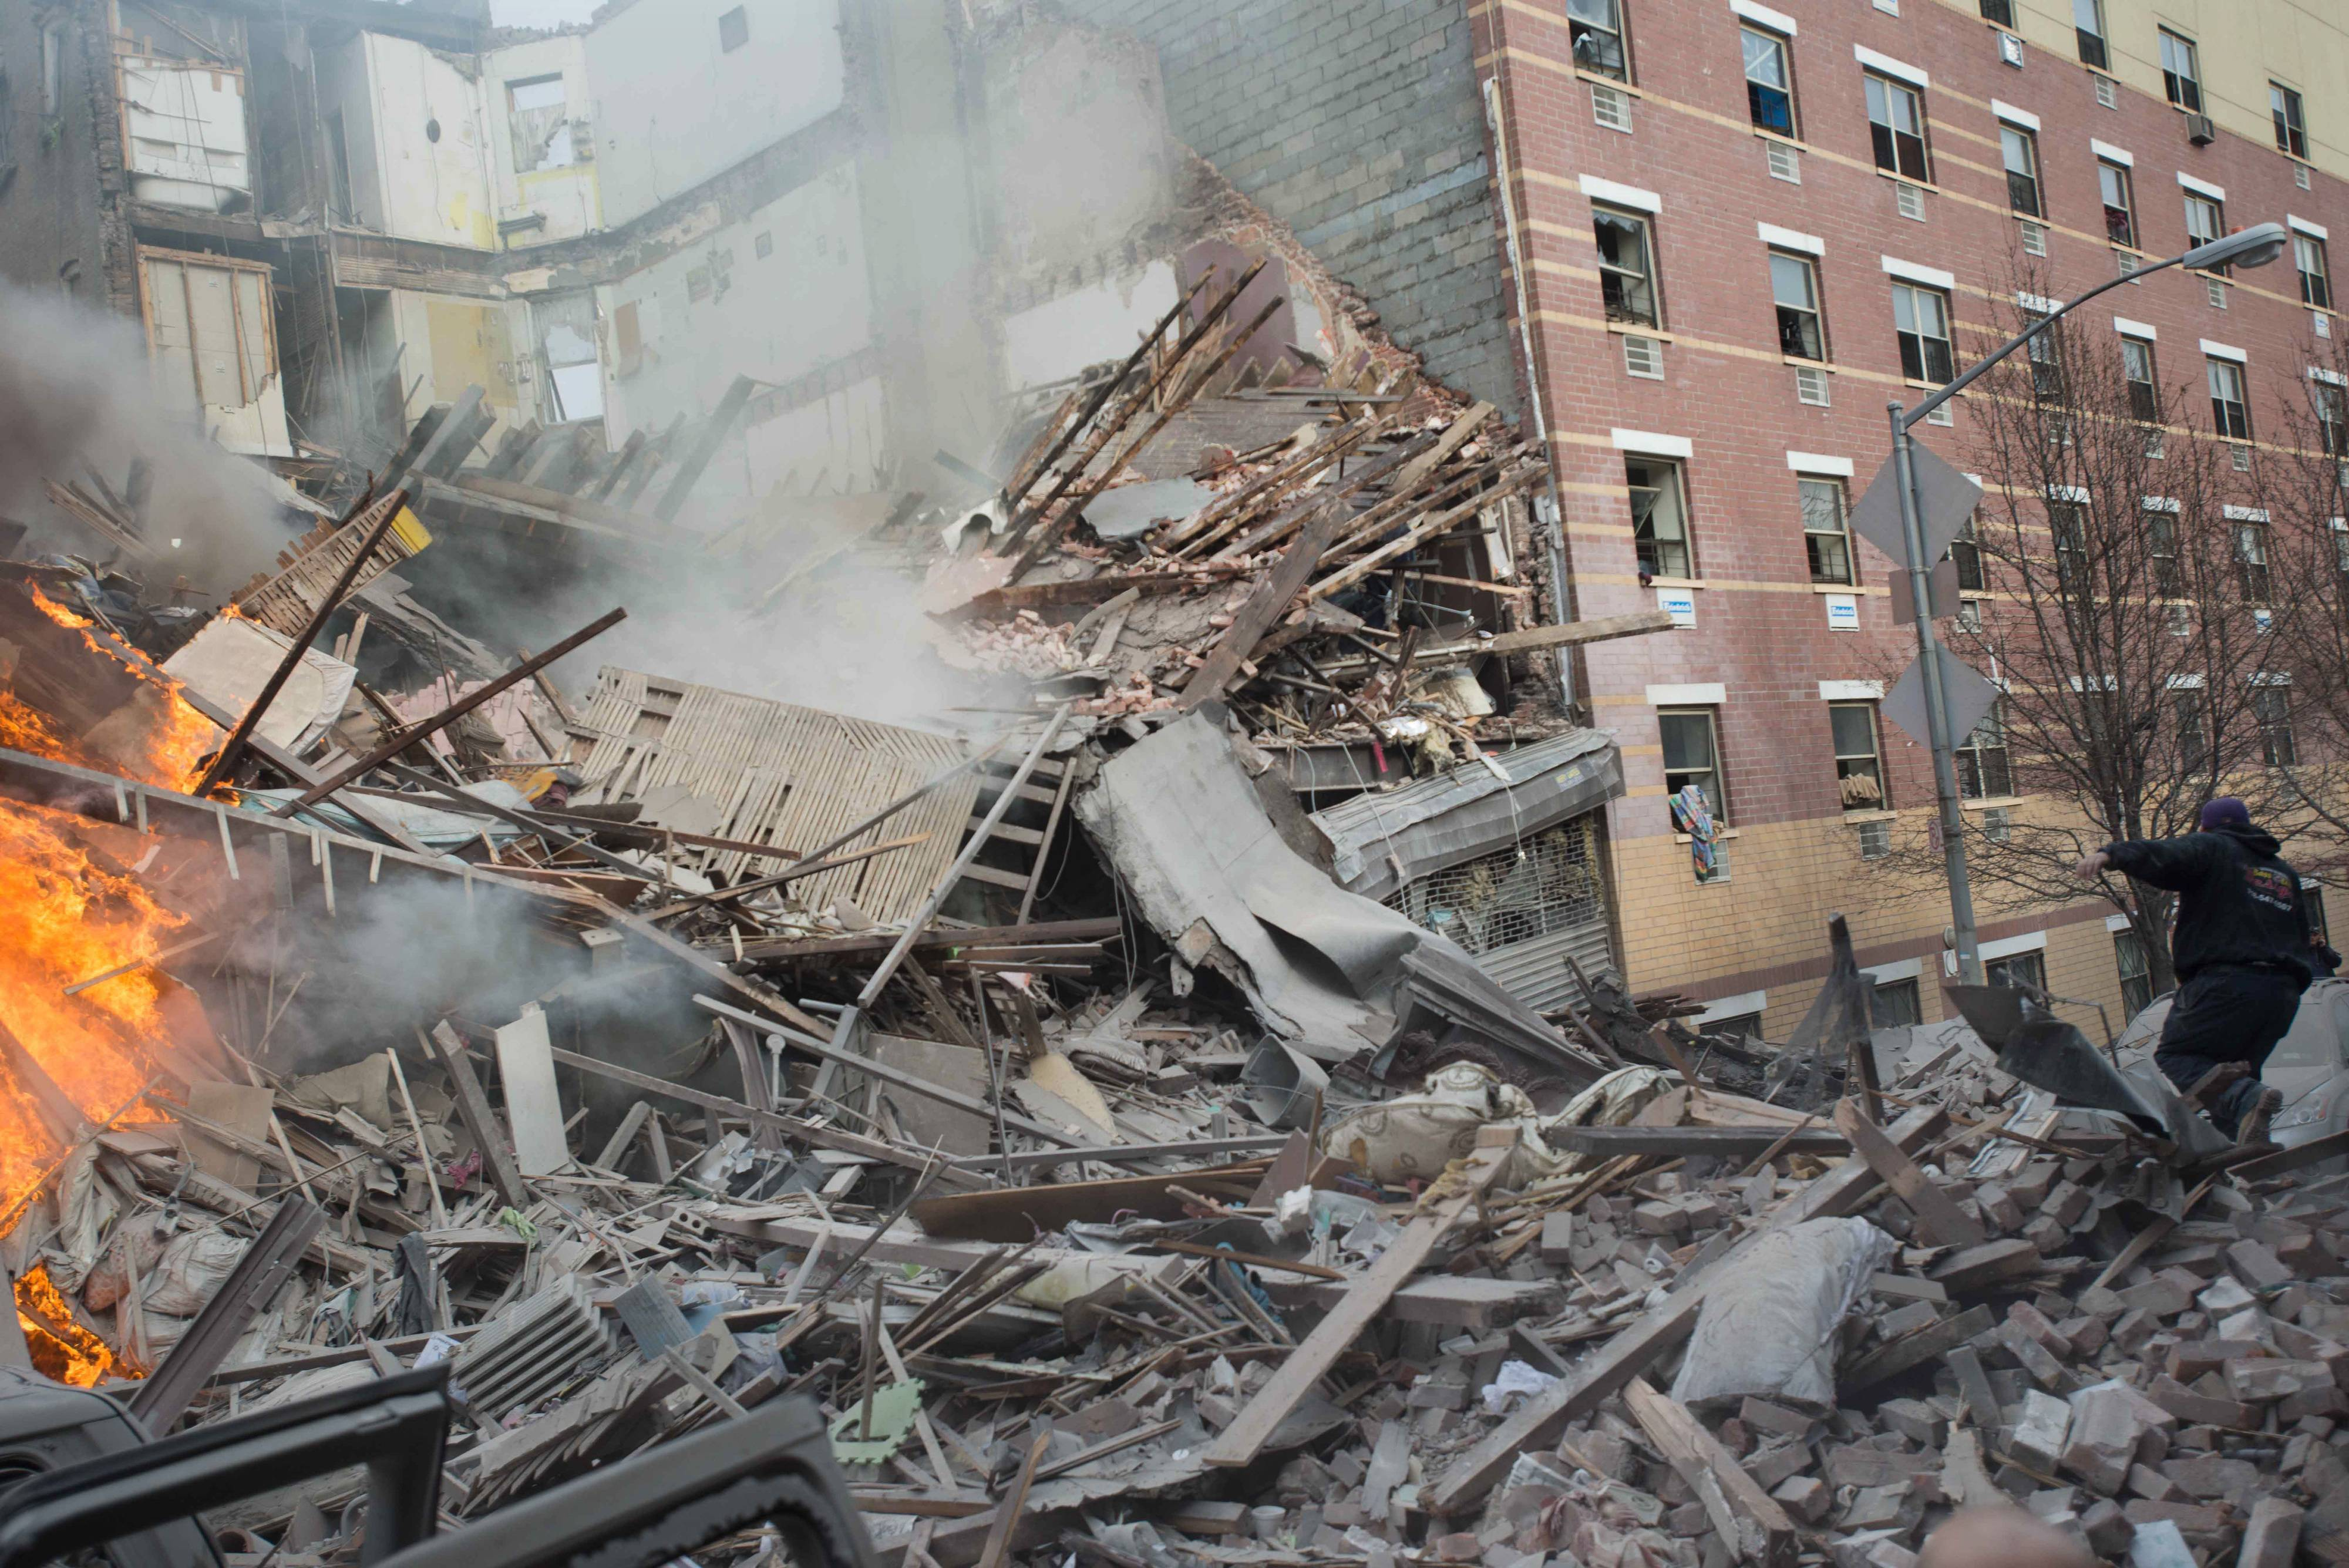 Emergency workers respond to the scene of an explosion and building collapse in the East Harlem neighborhood of New York, Wednesday, March 12, 2014. The explosion leveled two apartment buildings, and sent flames and billowing black smoke above the skyline.